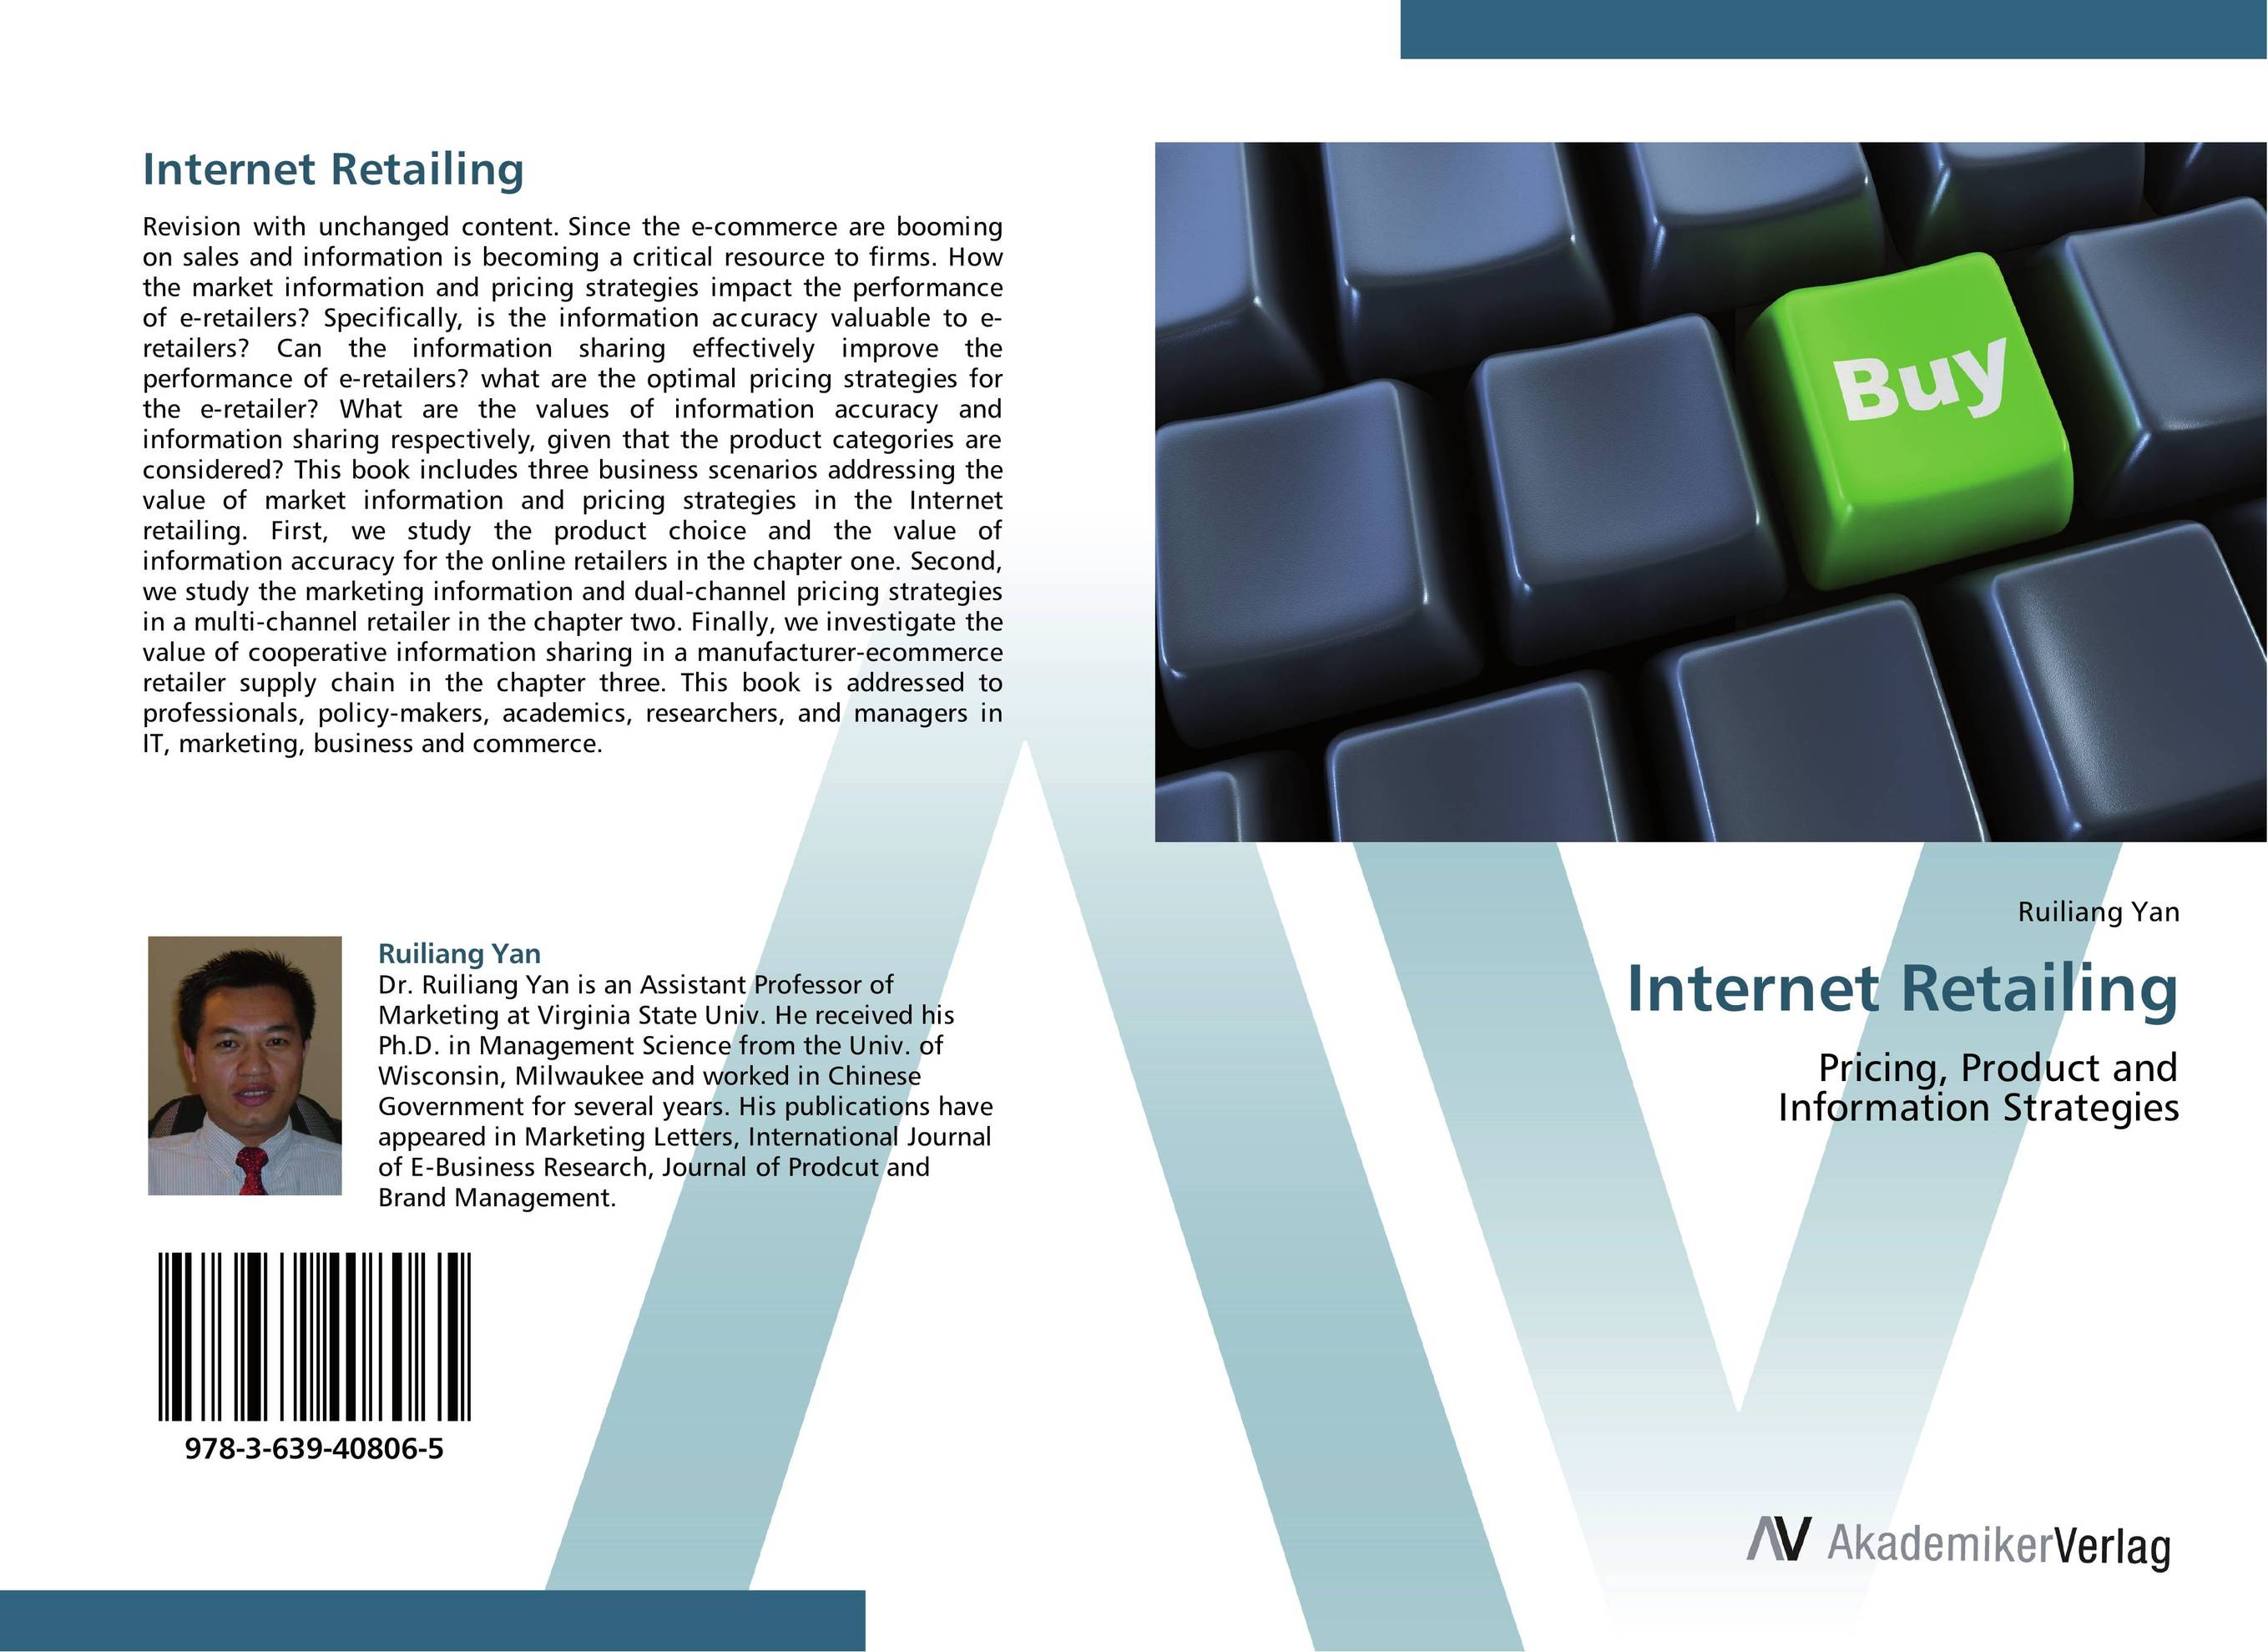 how has the internet affected marketing